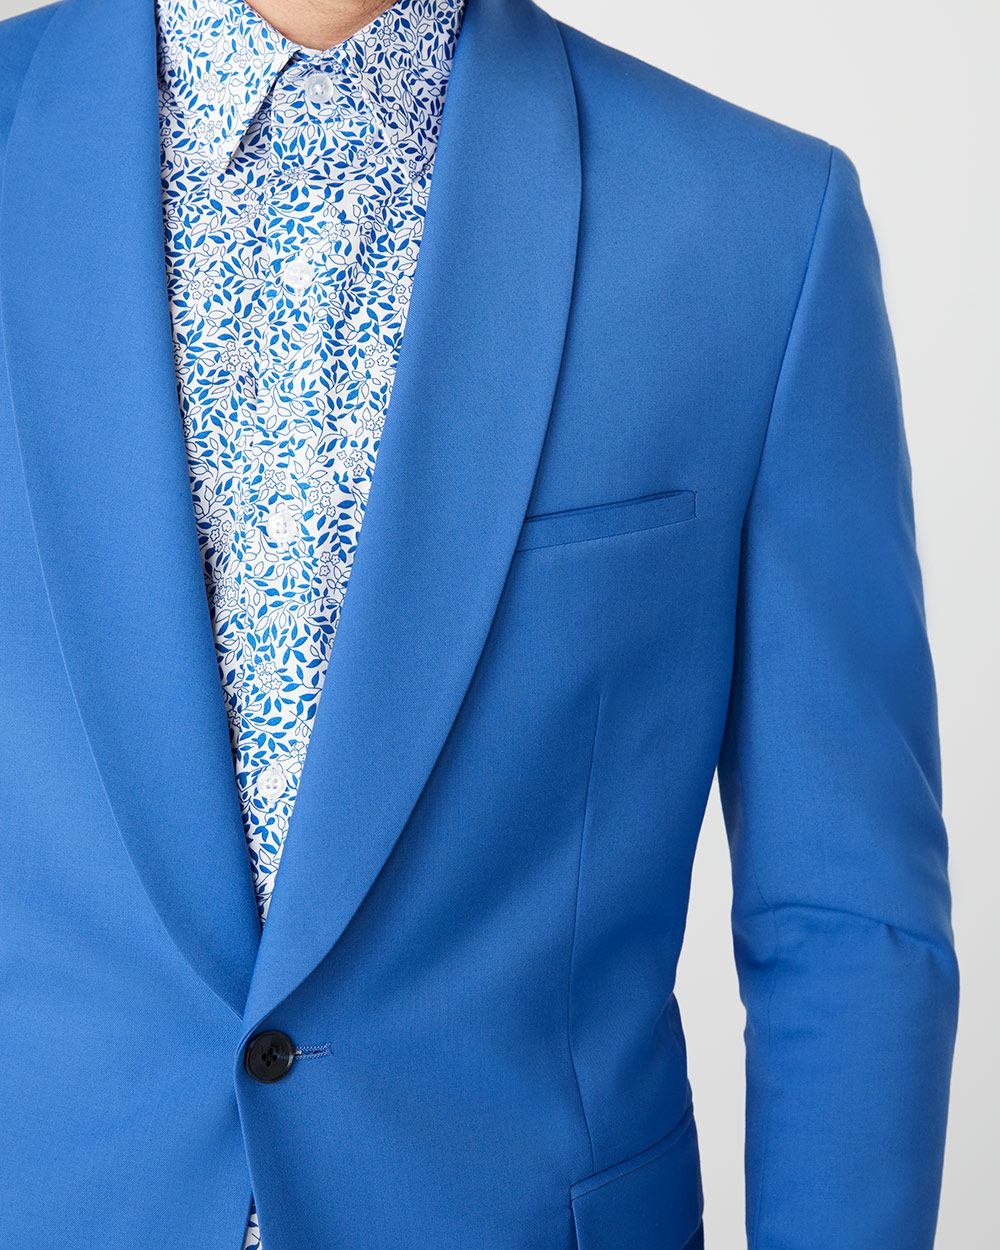 Tailored Fit Bright blue suit blazer